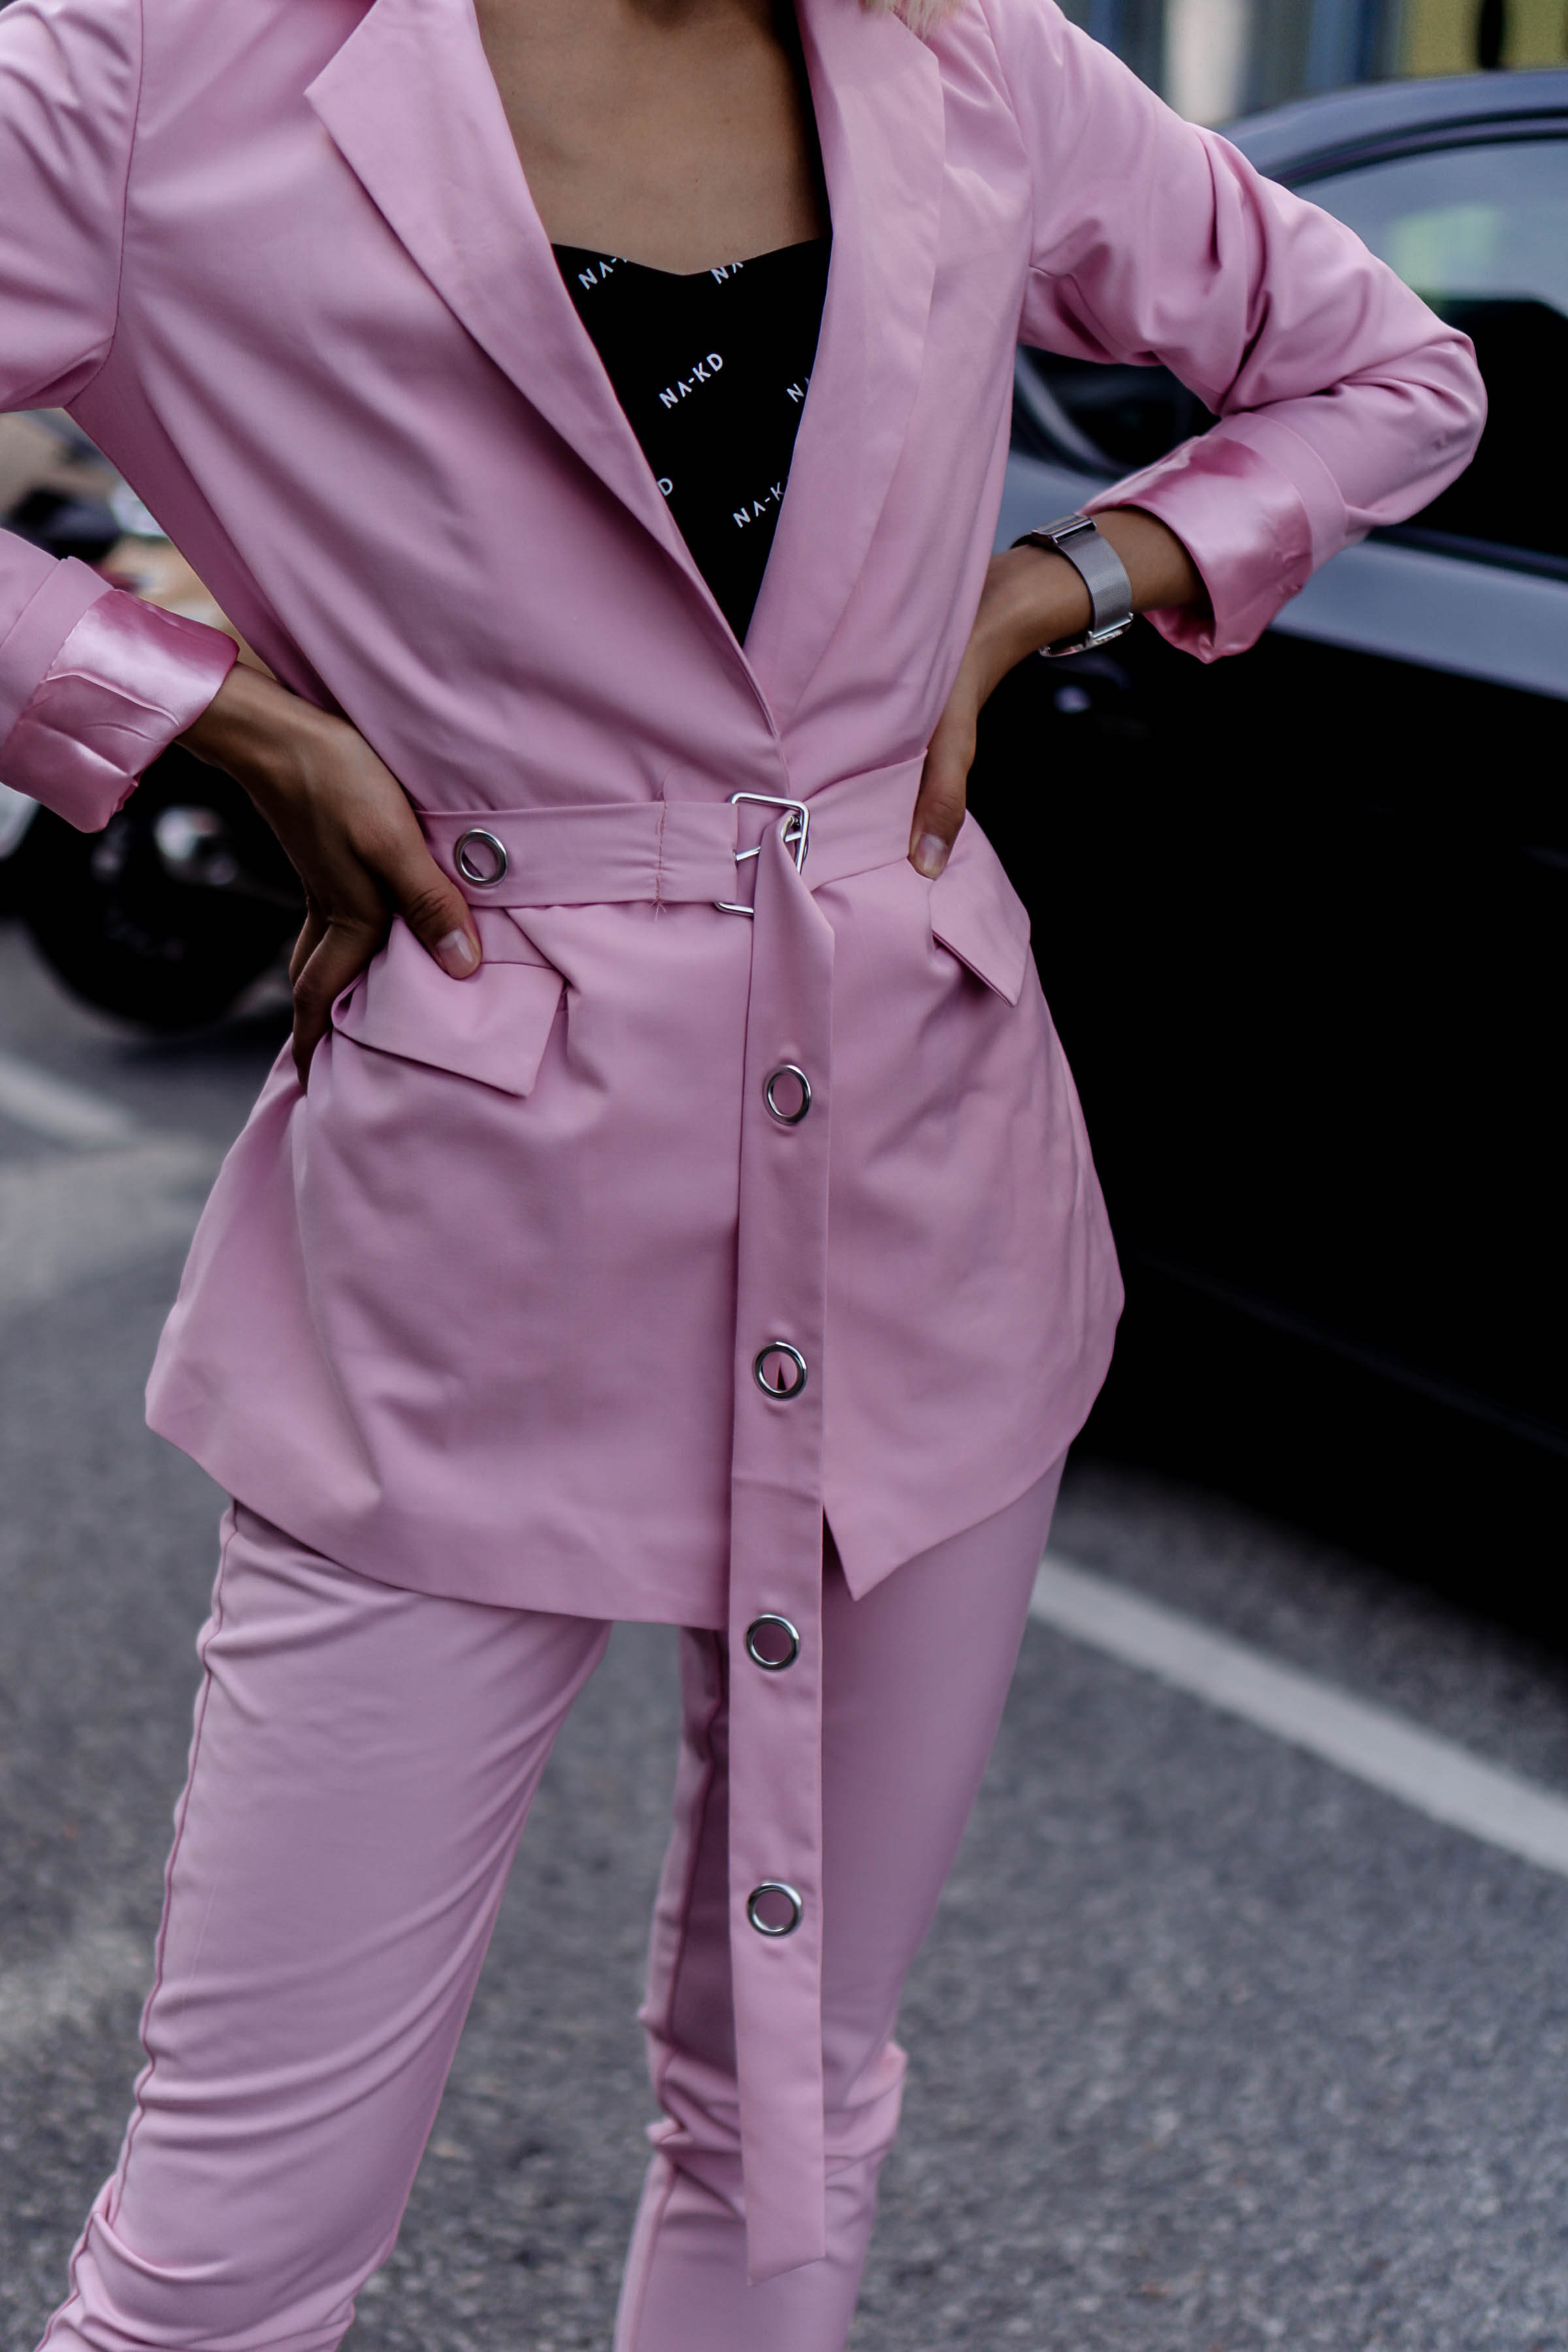 How to wear pink?